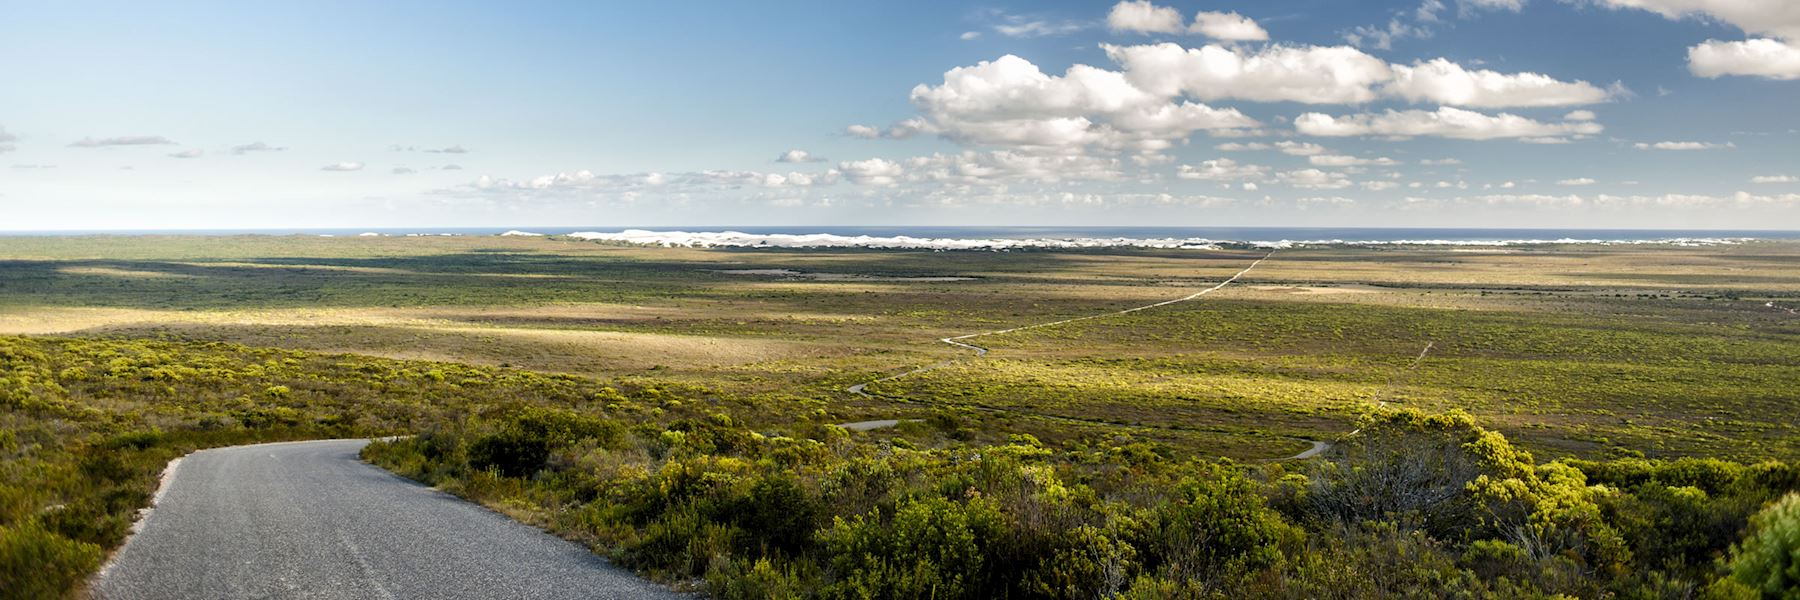 Visit De Hoop Nature Reserve, South Africa